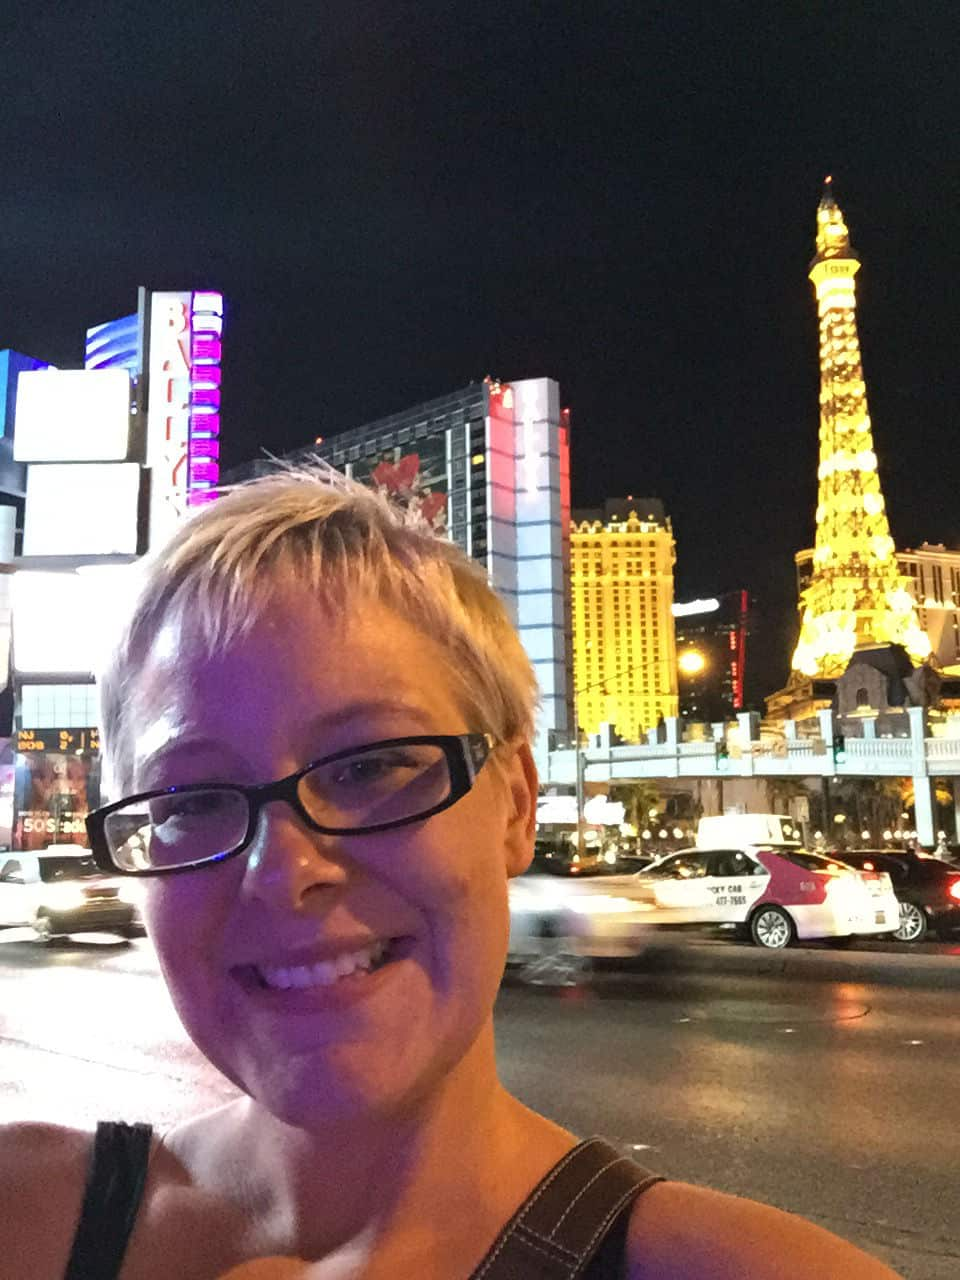 A selfie with the Paris casino in the background.